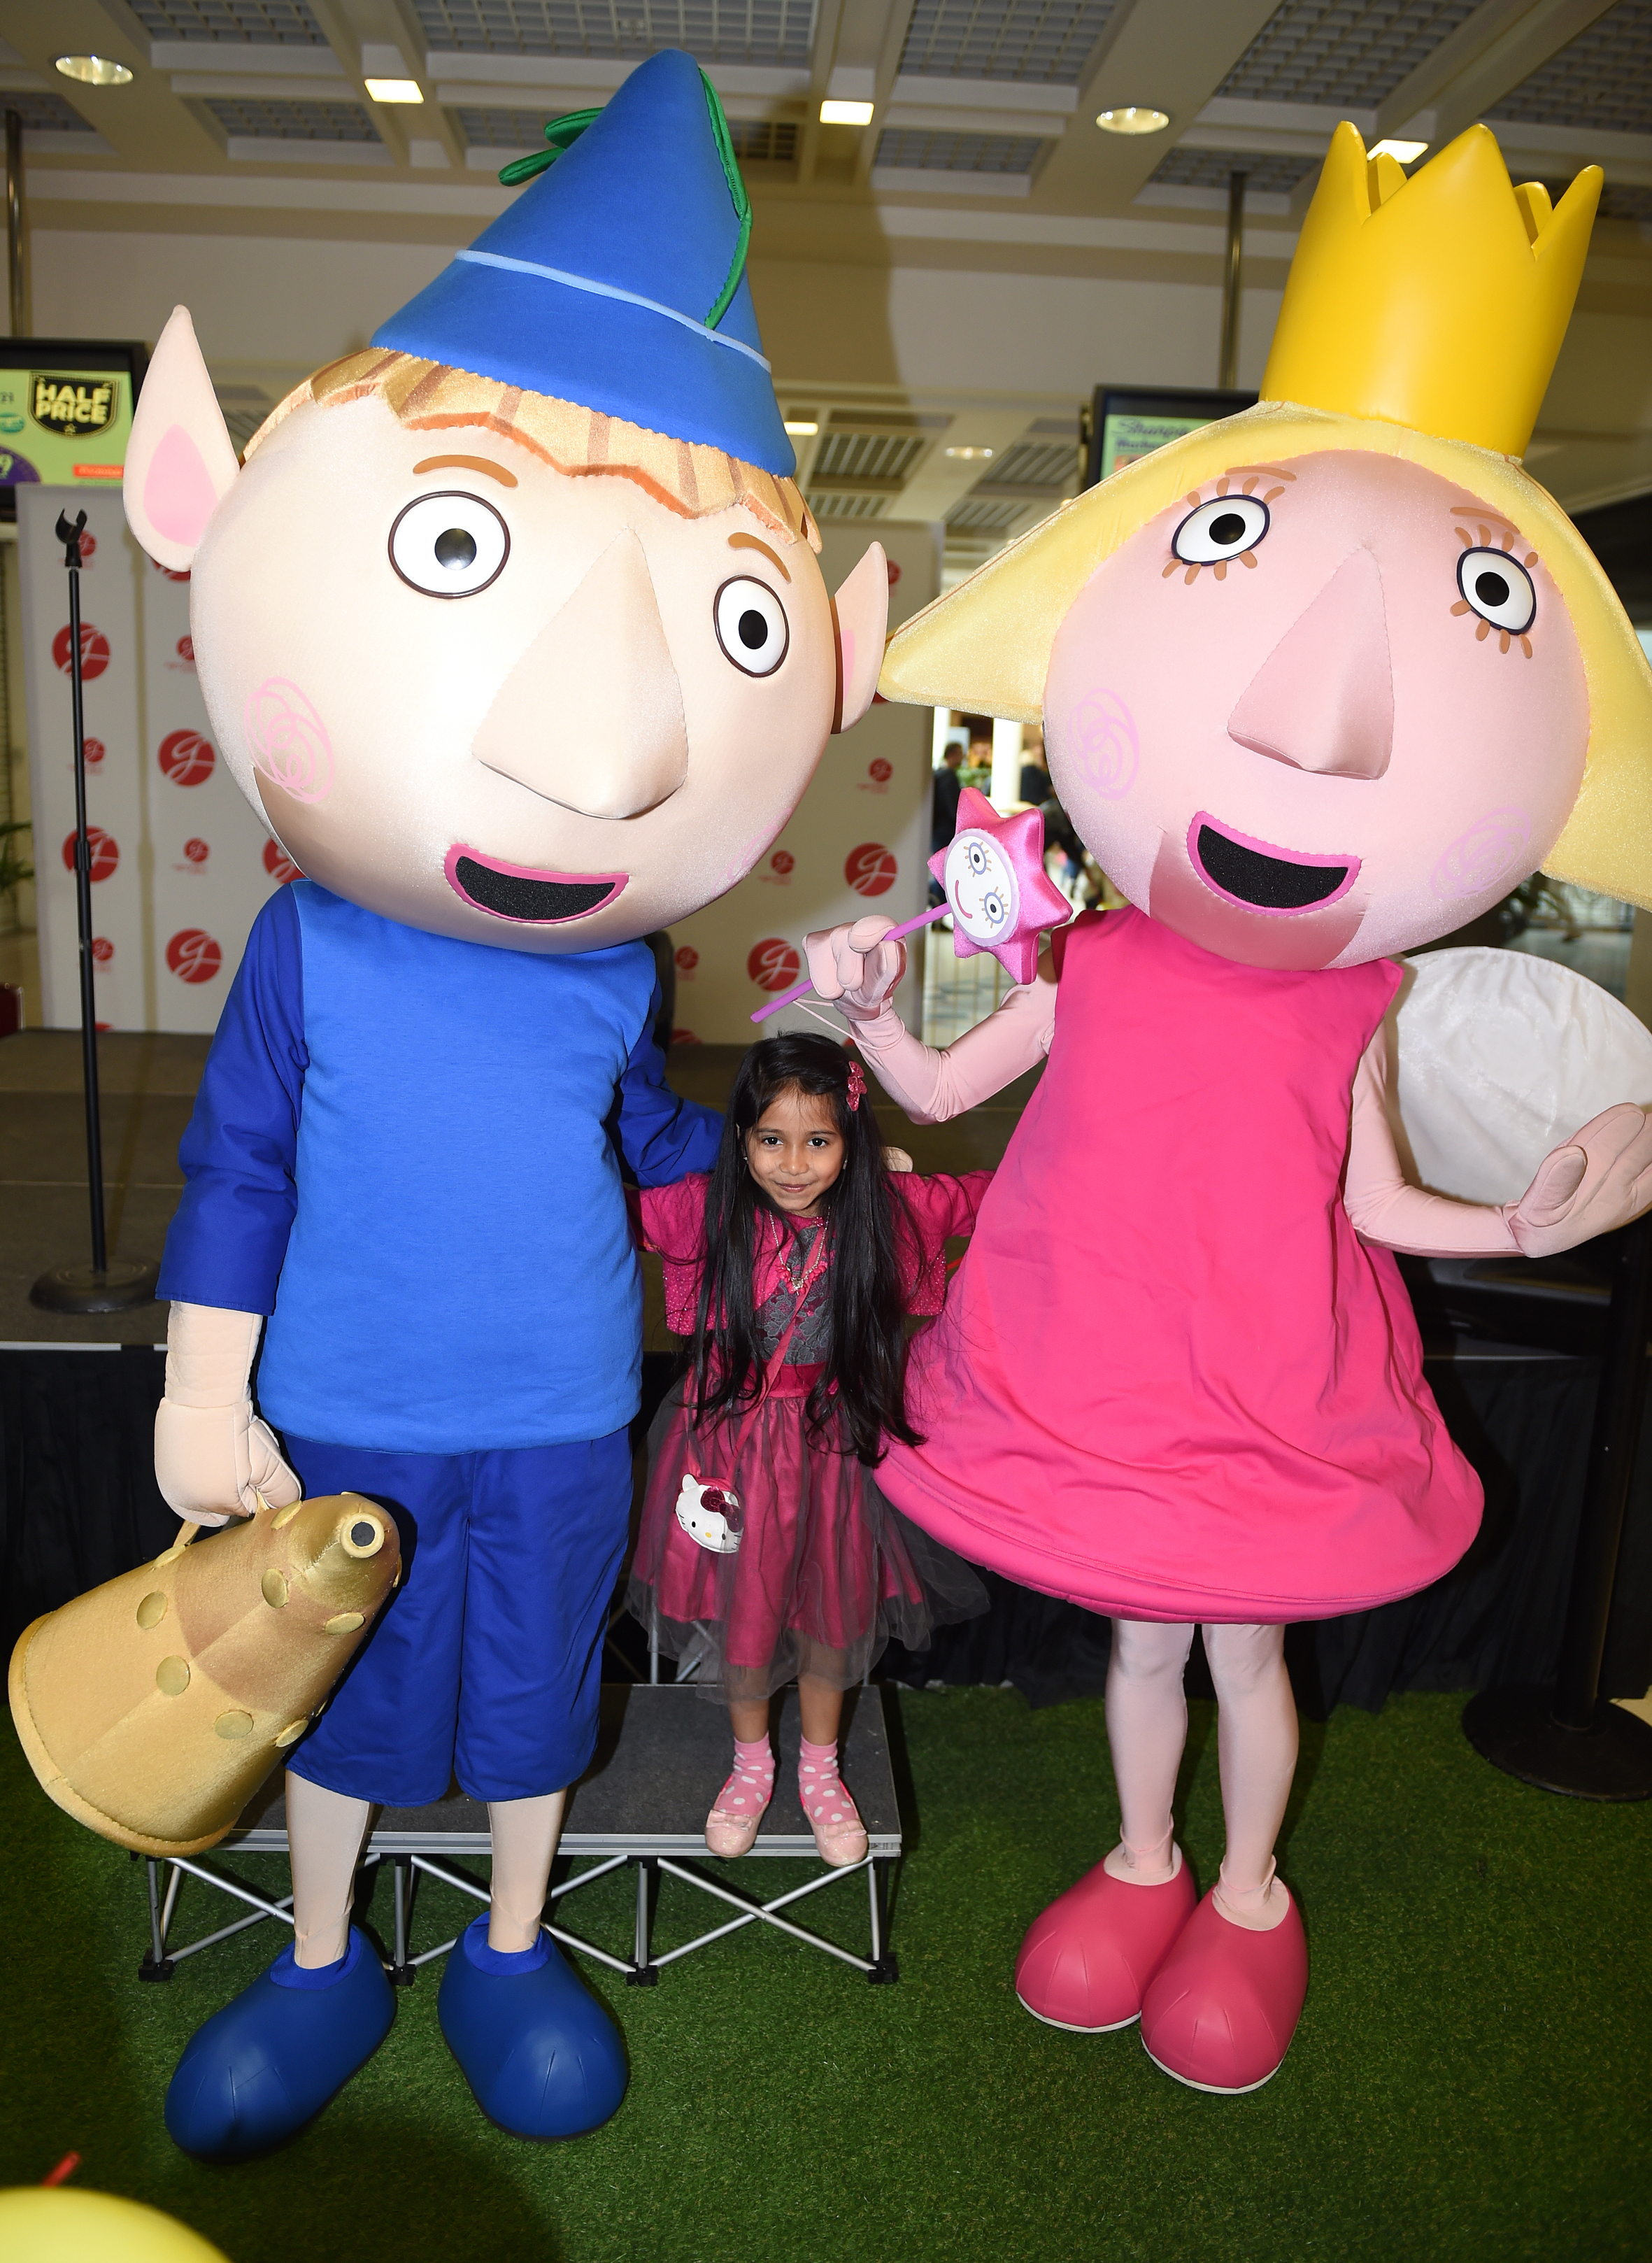 Sanvi Chauhan aged 5 meets Ben and Holly